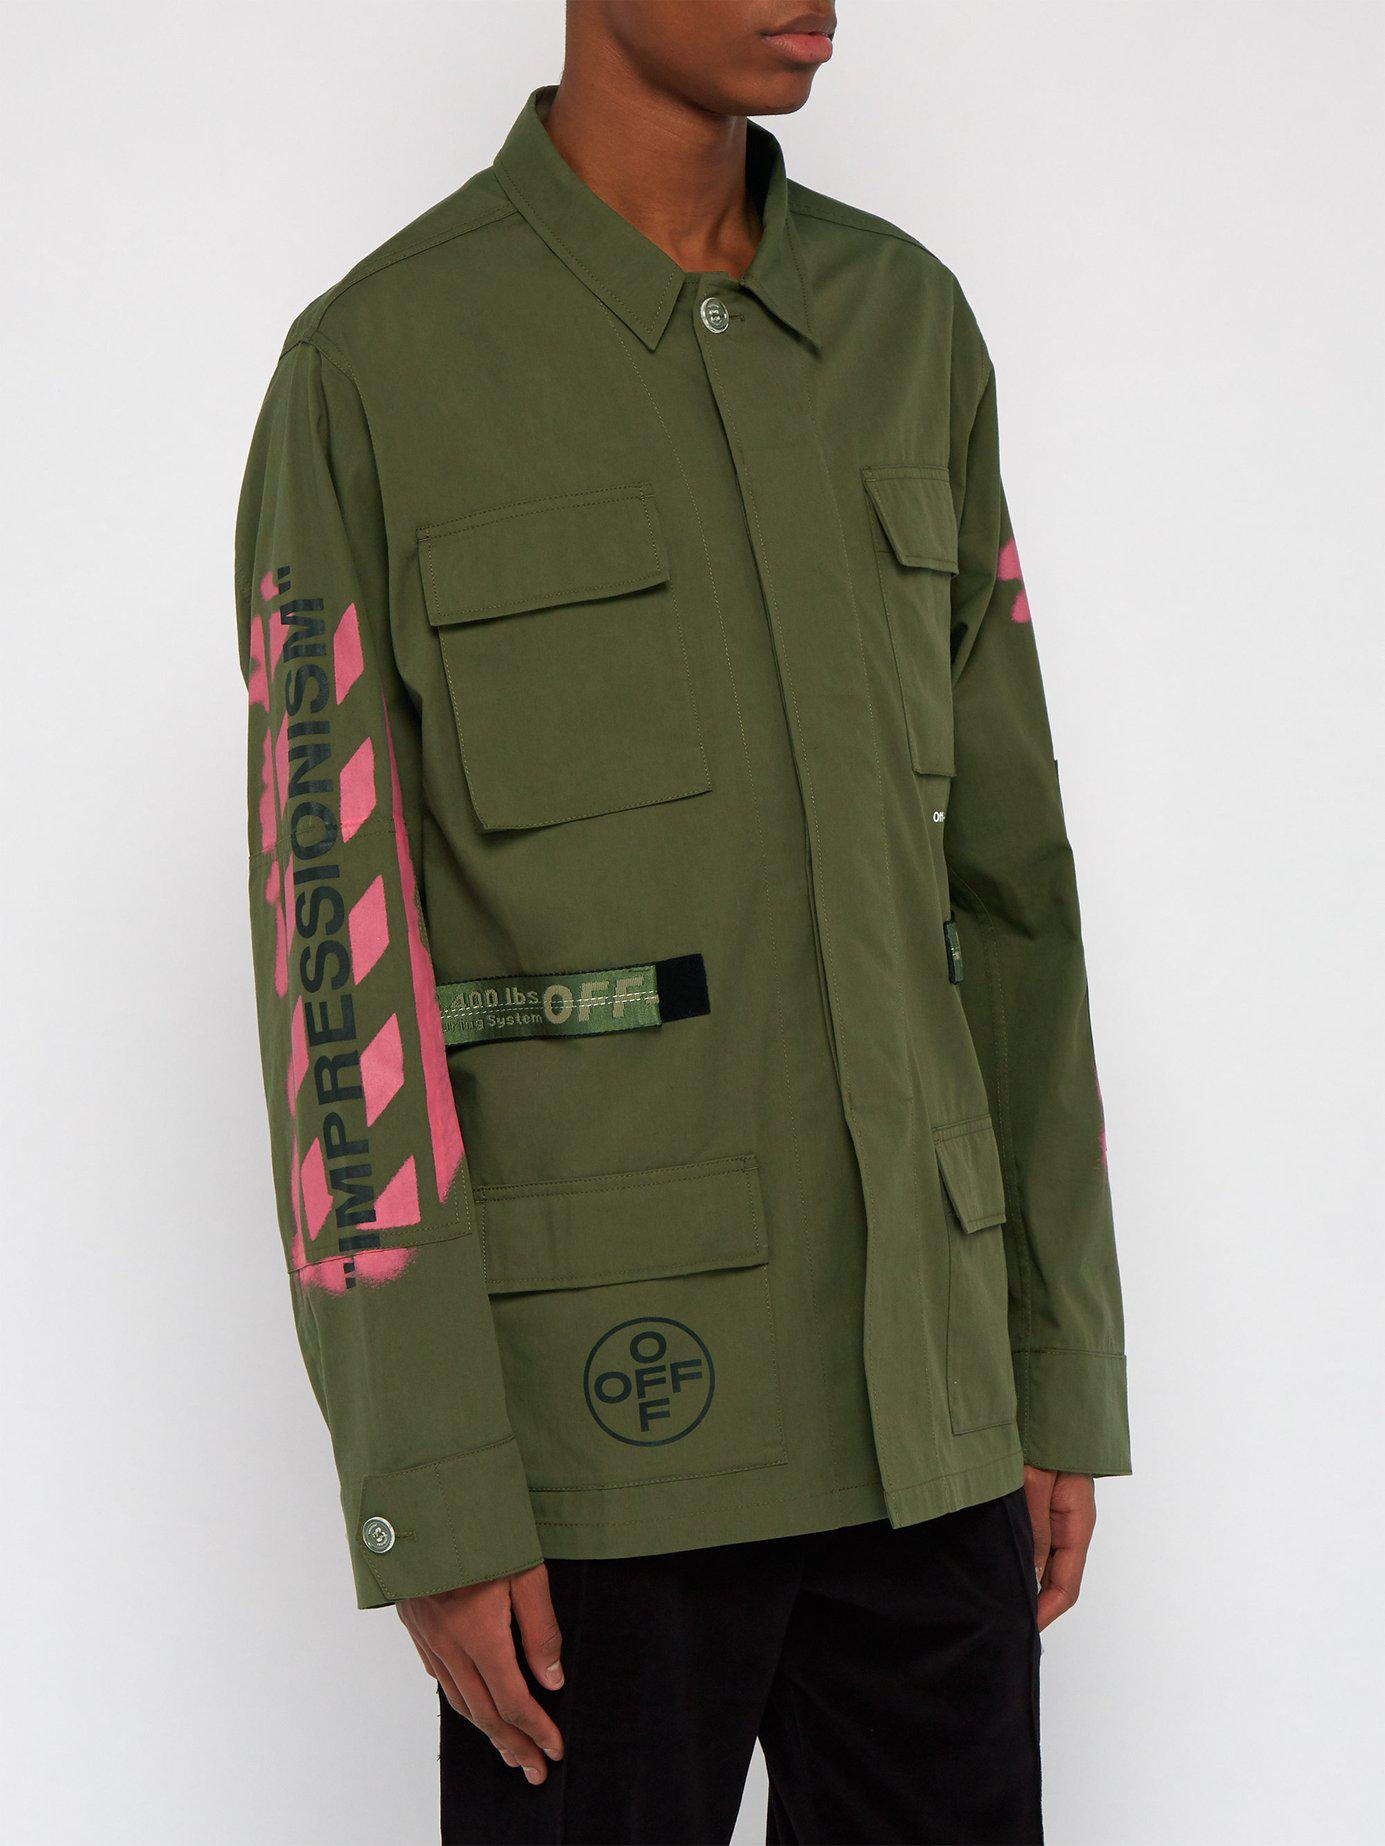 7839a38777af Off-White c o Virgil Abloh - Green Diagonal Arrow Print Military Field  Jacket. View fullscreen